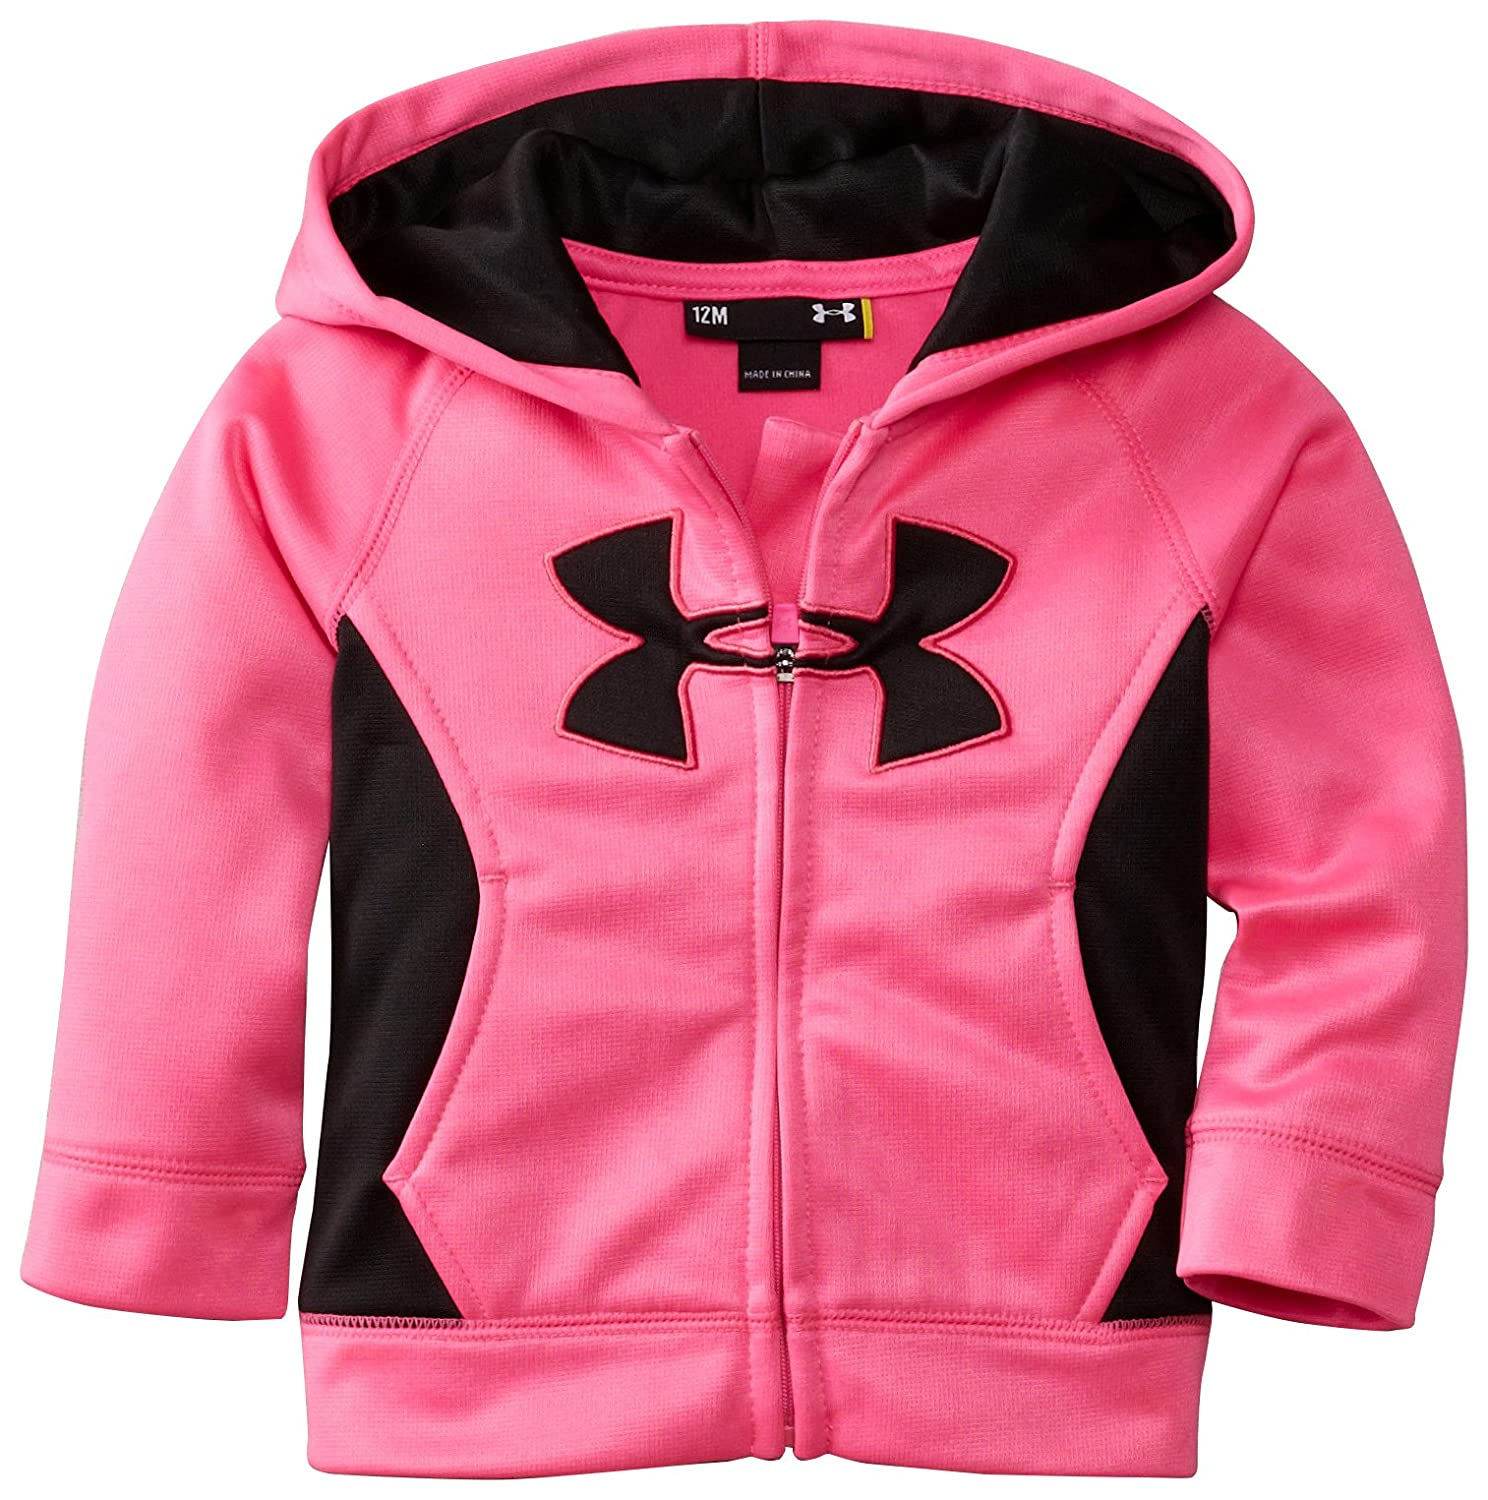 Amazon.com: Under Armour Baby Girls Solid Logo Hoodie, Chaos, 12 Months: Clothing